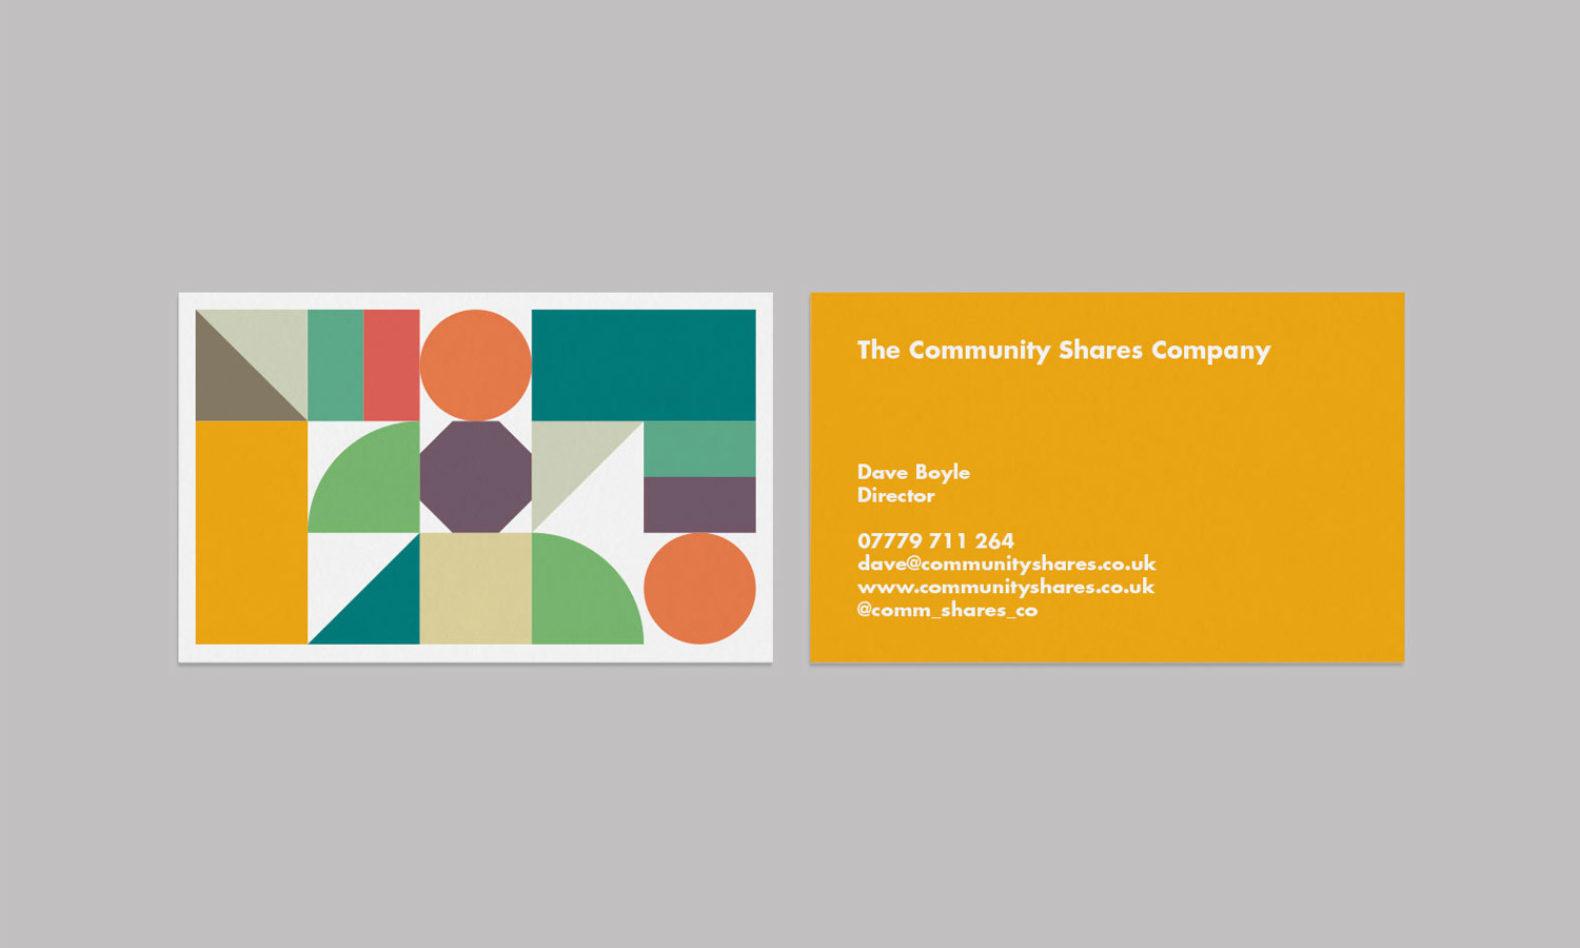 Geometric branding system for Community Shares used on their business card.